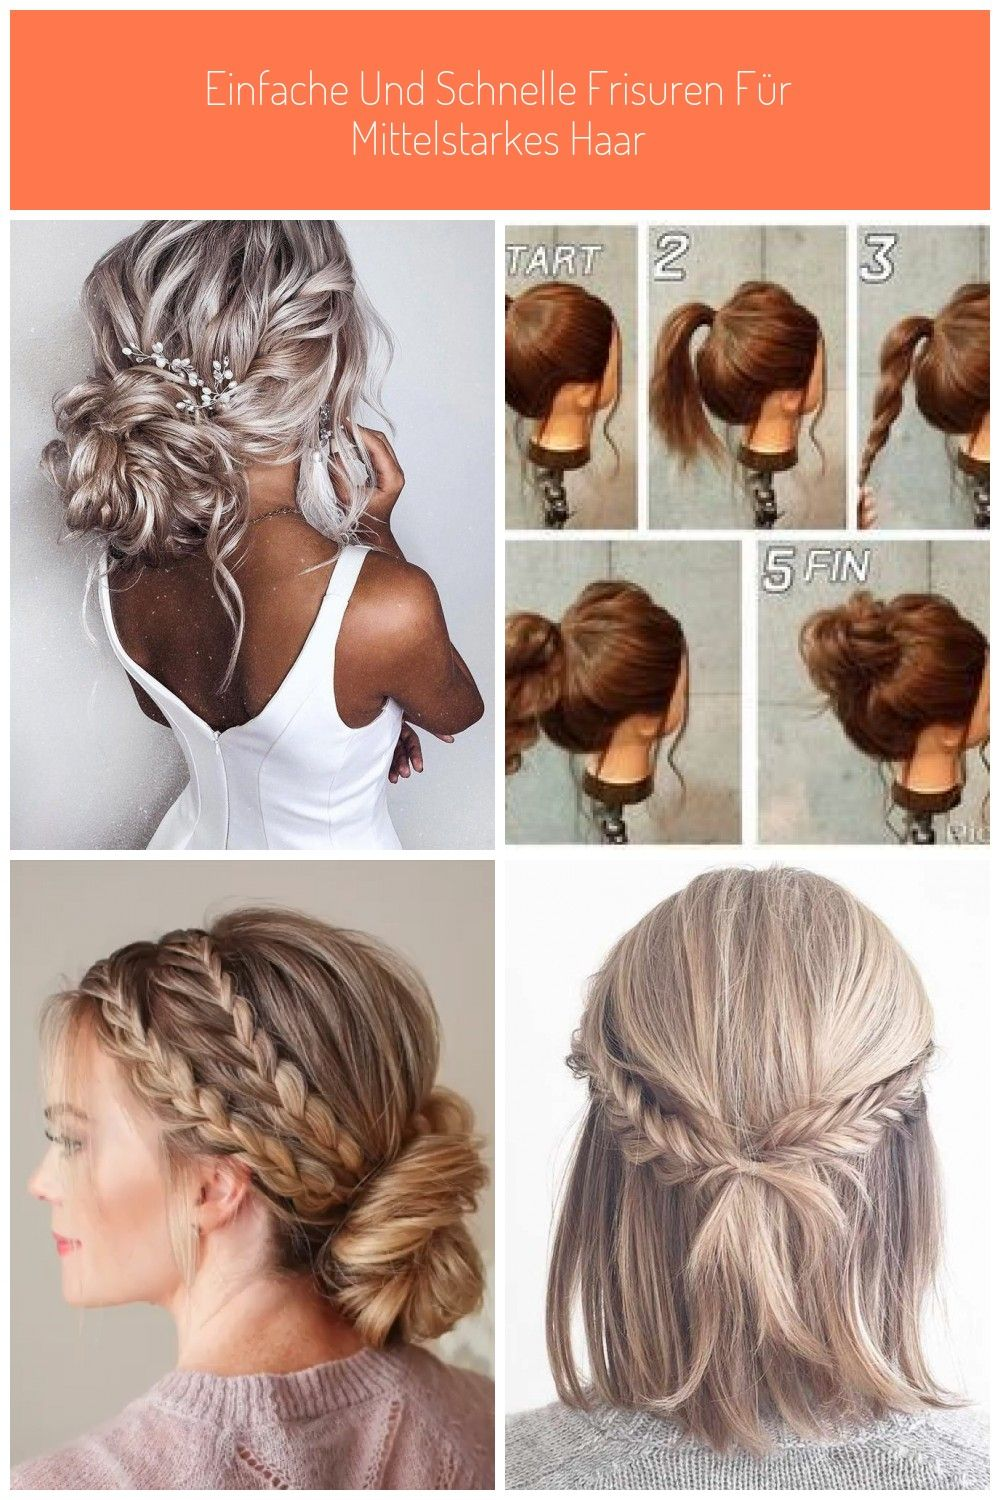 Hairstyles for Girls Shag Hairstyles Quick and easy updos for